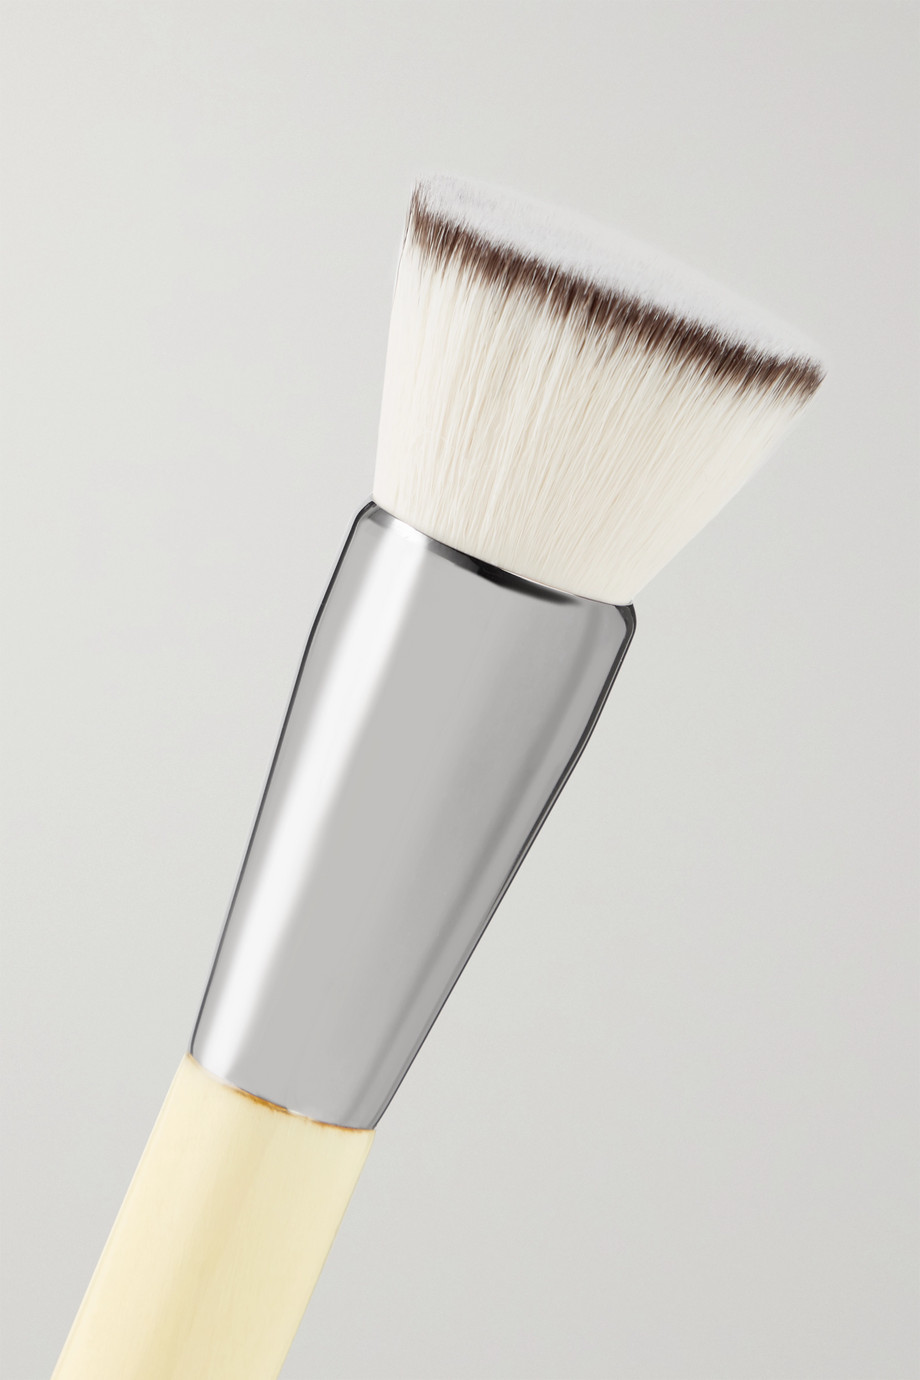 Chantecaille Buff and Blur Brush – Pinsel